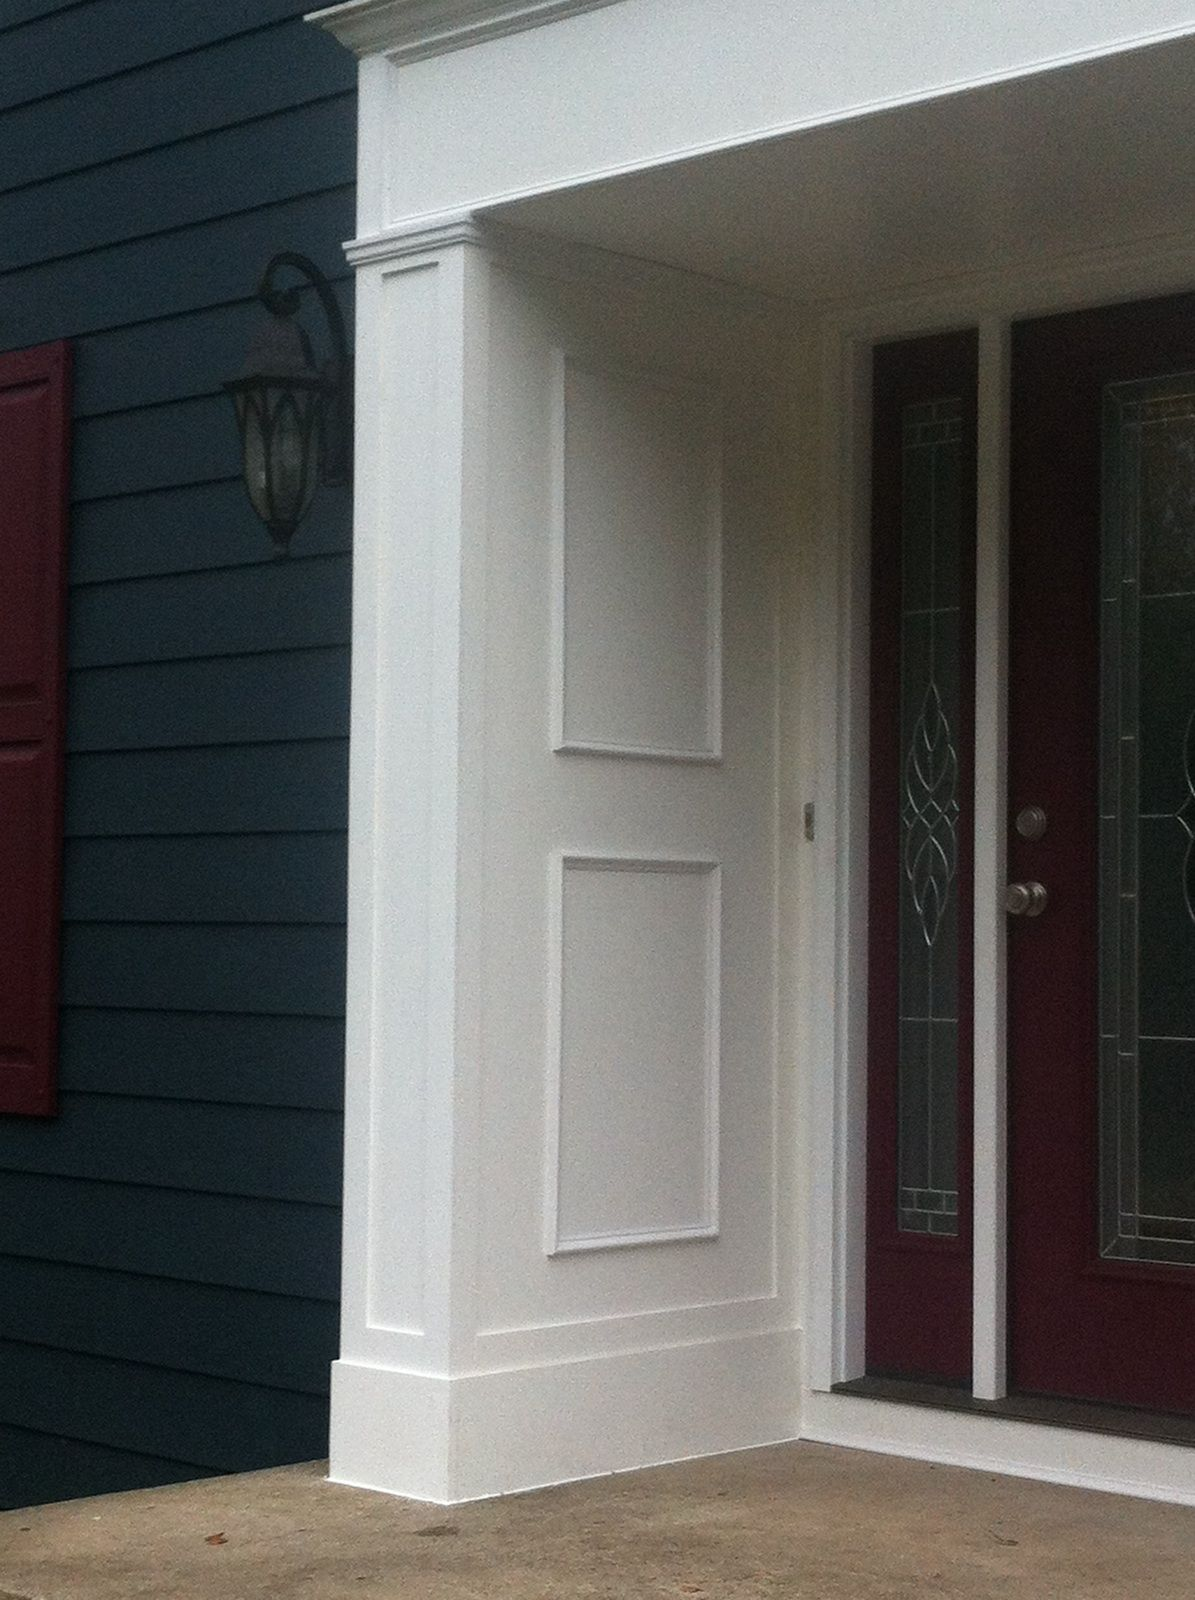 Azek Trim Contractor In Bergen County NJ, Installation Of Royal Celect  Siding On This House